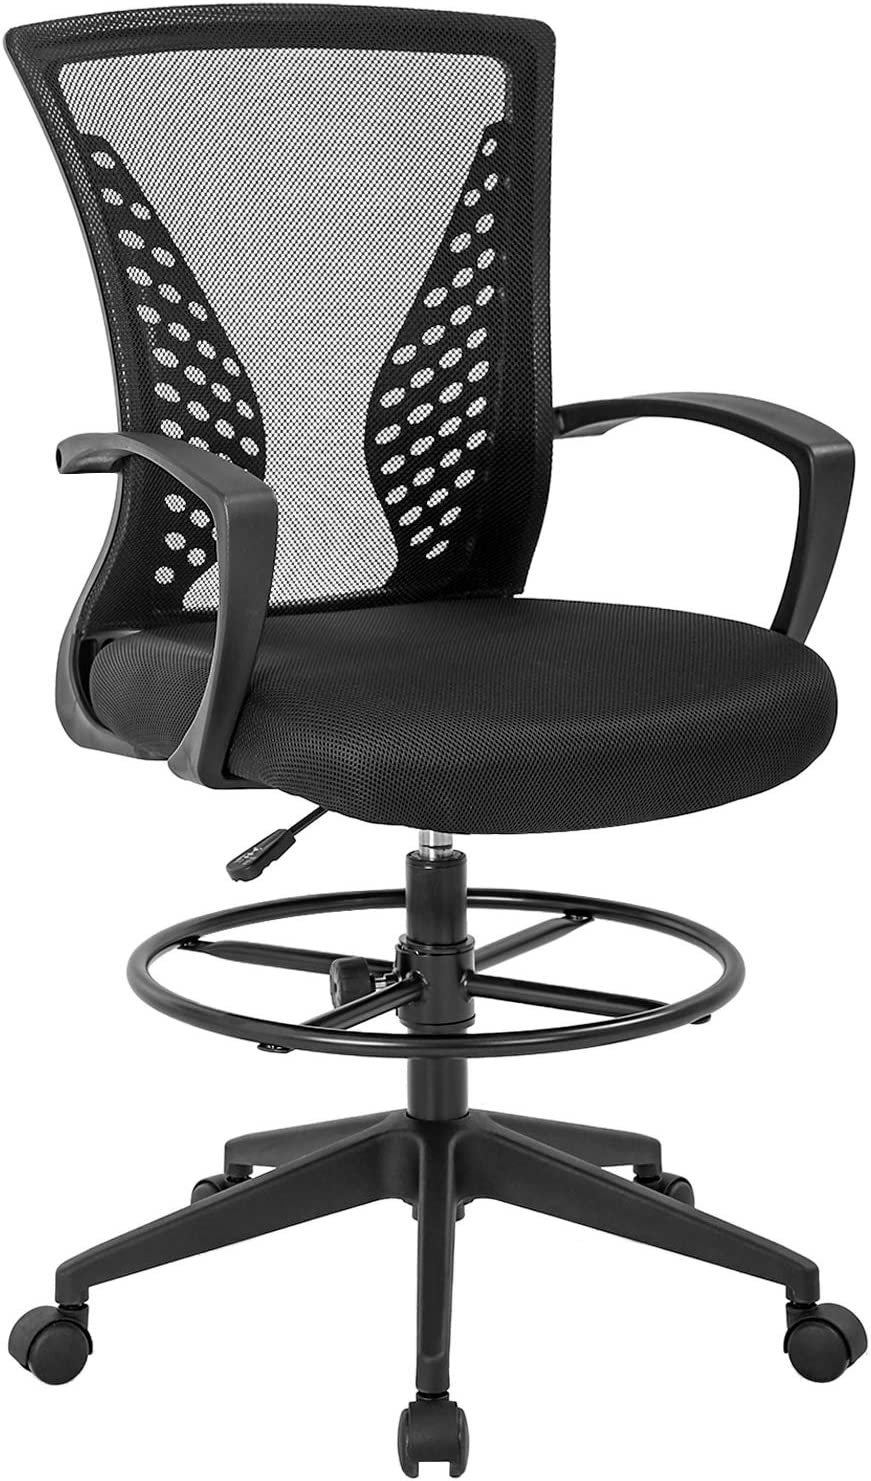 Drafting Chair Tall Office Chair Adjustable Height with Arms Foot Rest Back Support Adjustable Height Rolling Swivel Desk Chair Mesh Drafting Stool for Standing Desk Adults(Black)